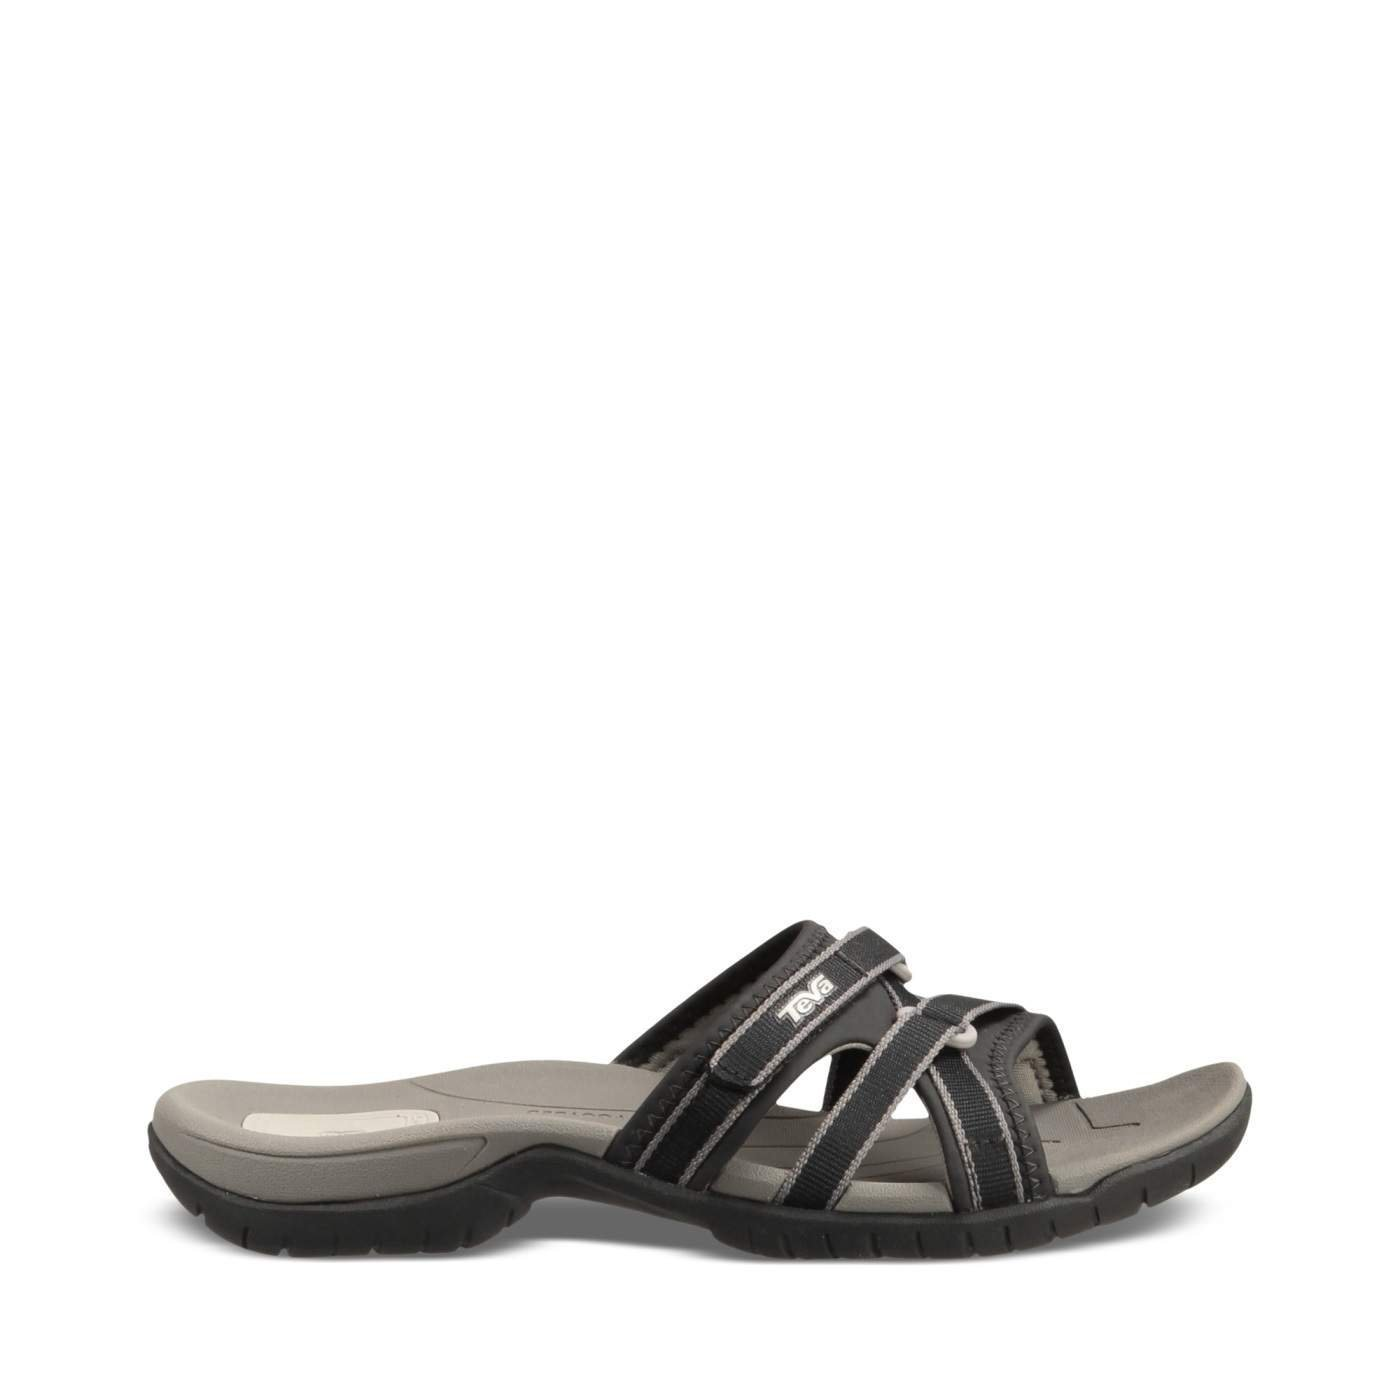 Teva Women's Tirra Slide Sandal,Black,8 M US